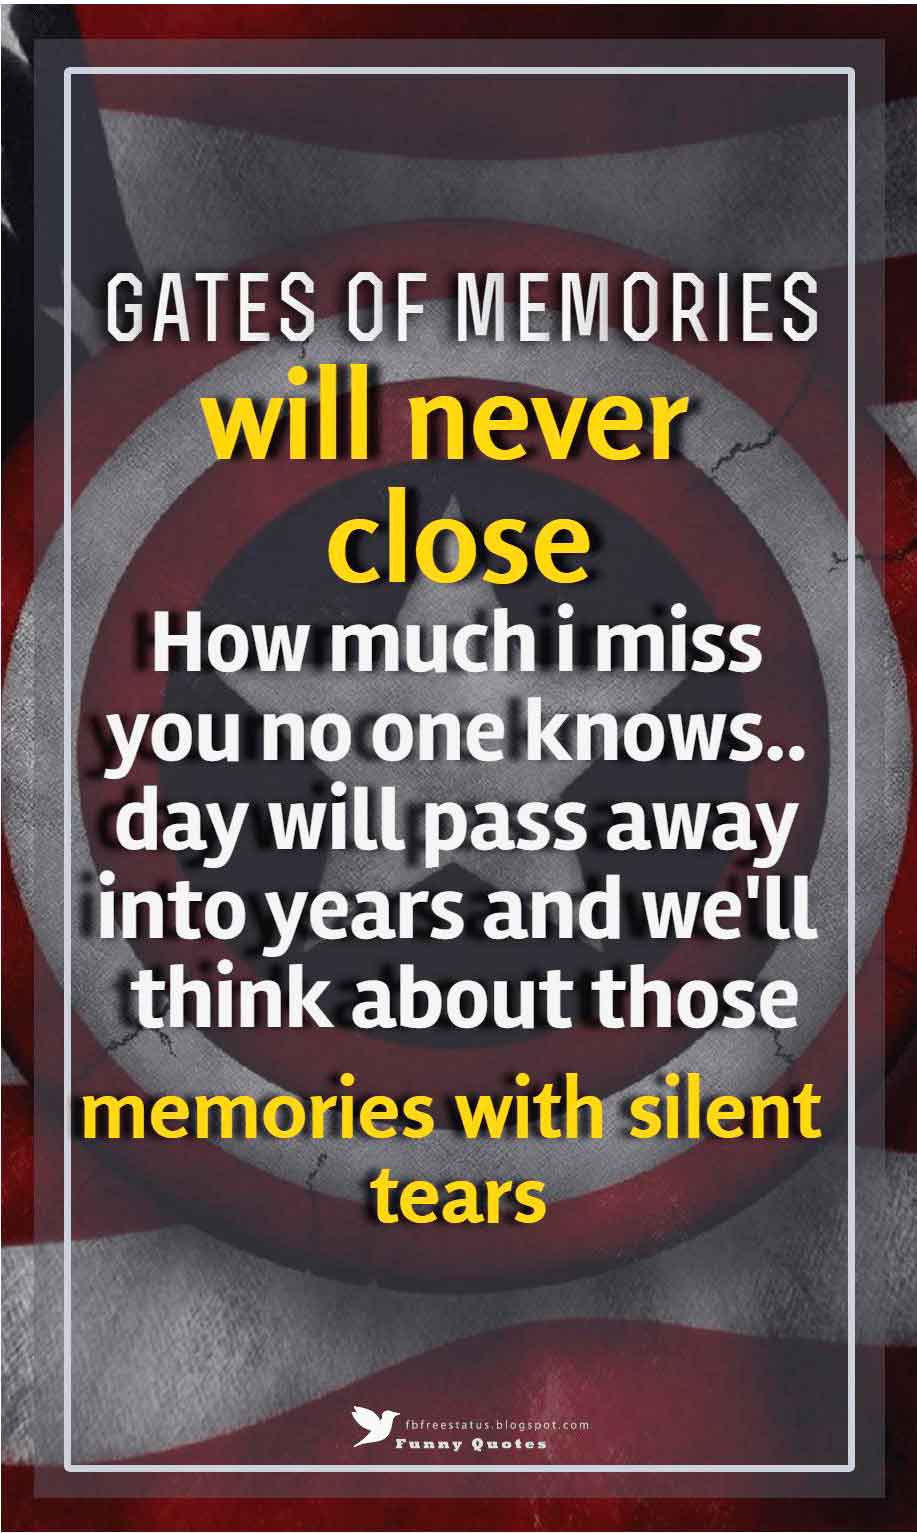 Gates of memories will never close... how much i miss you no one knows.. day will pass away into years and we'll think about those memories with silent tears